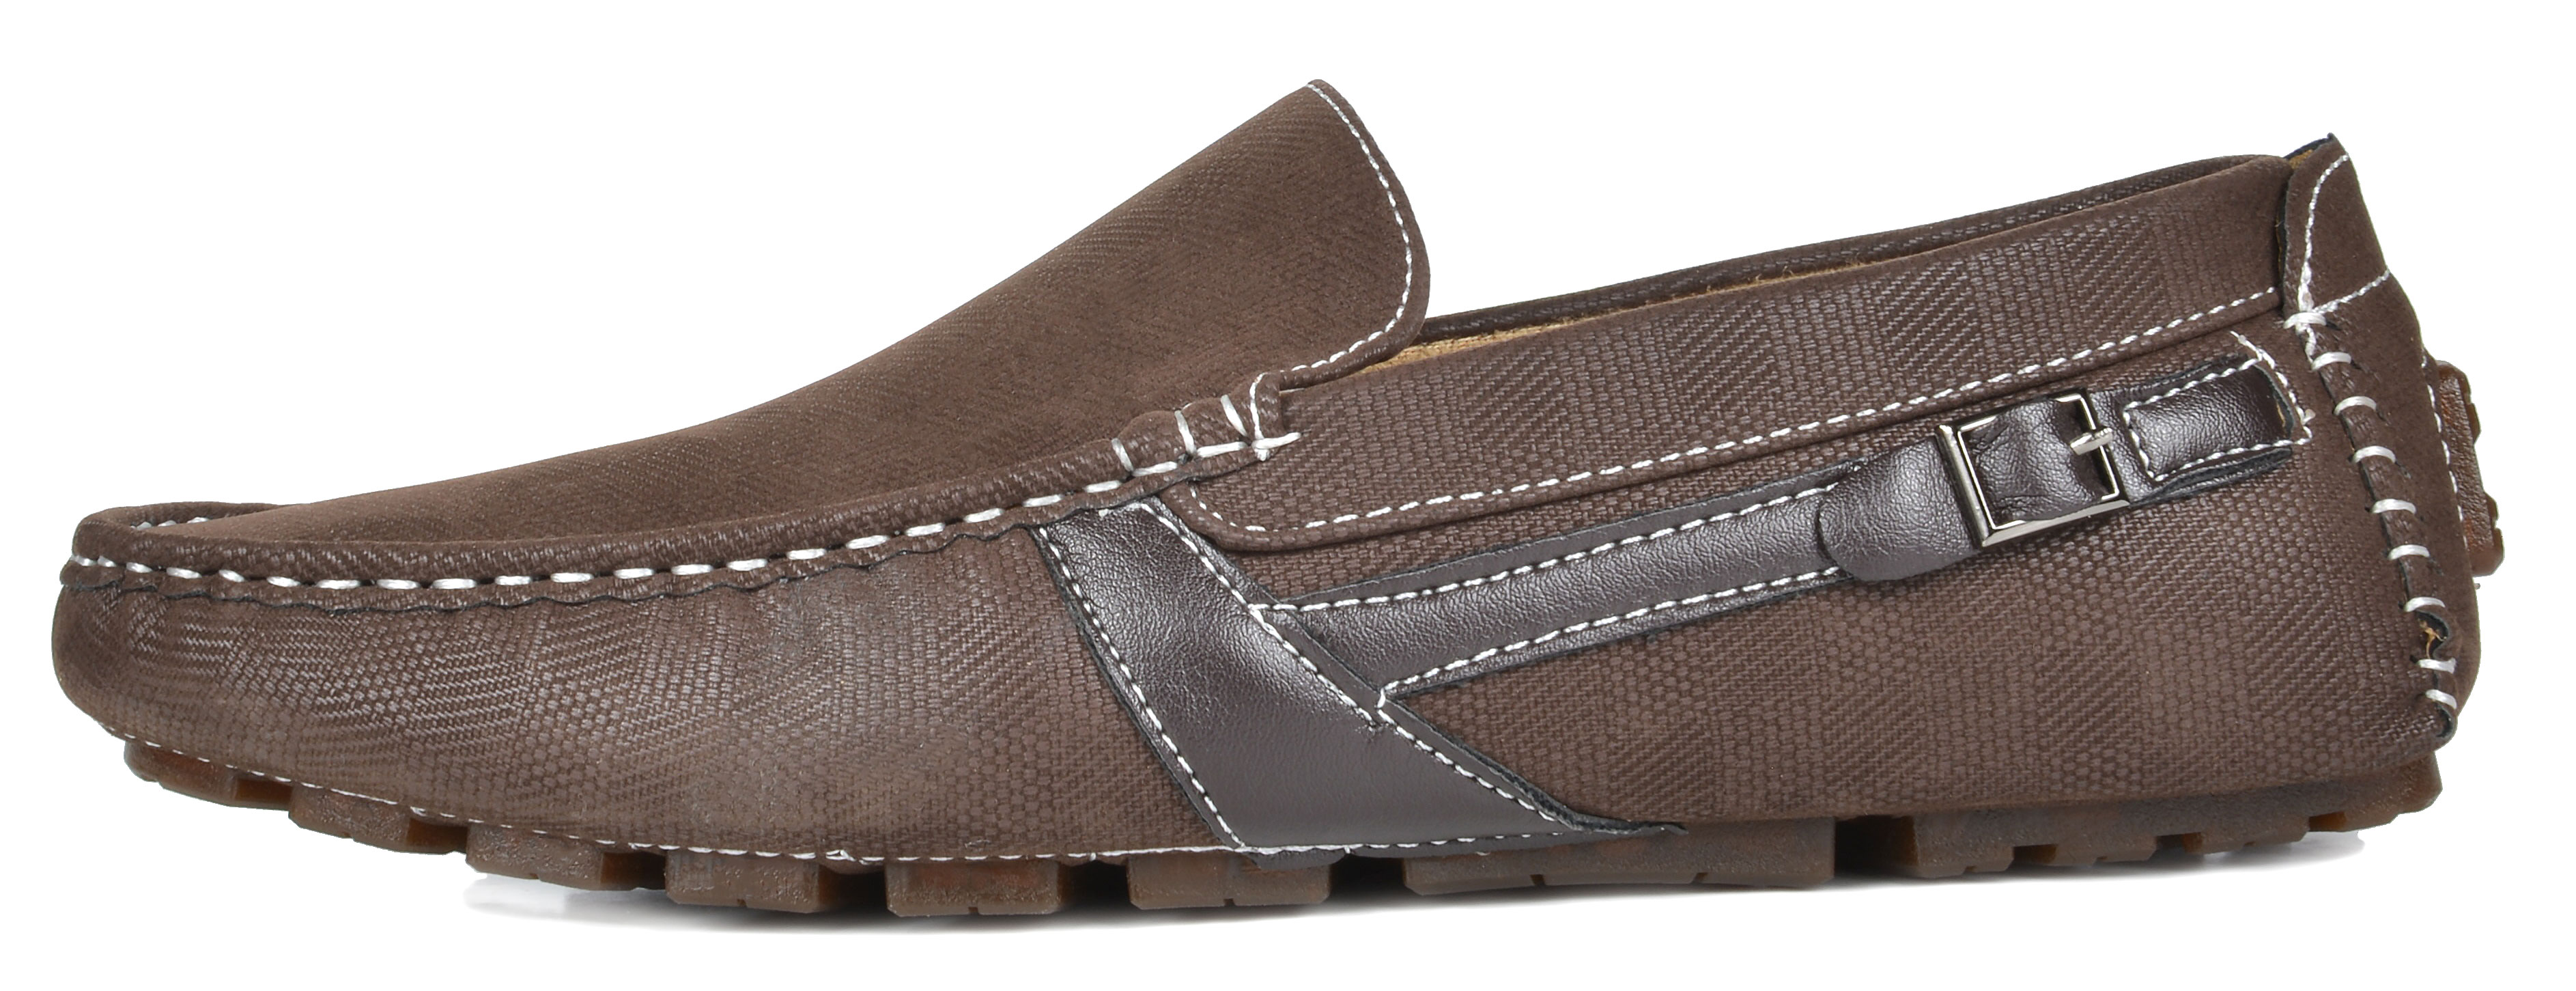 Bruno-Marc-Men-039-s-New-Classic-Fashion-Slip-on-Driving-Casual-Loafers-Boat-Shoes thumbnail 67